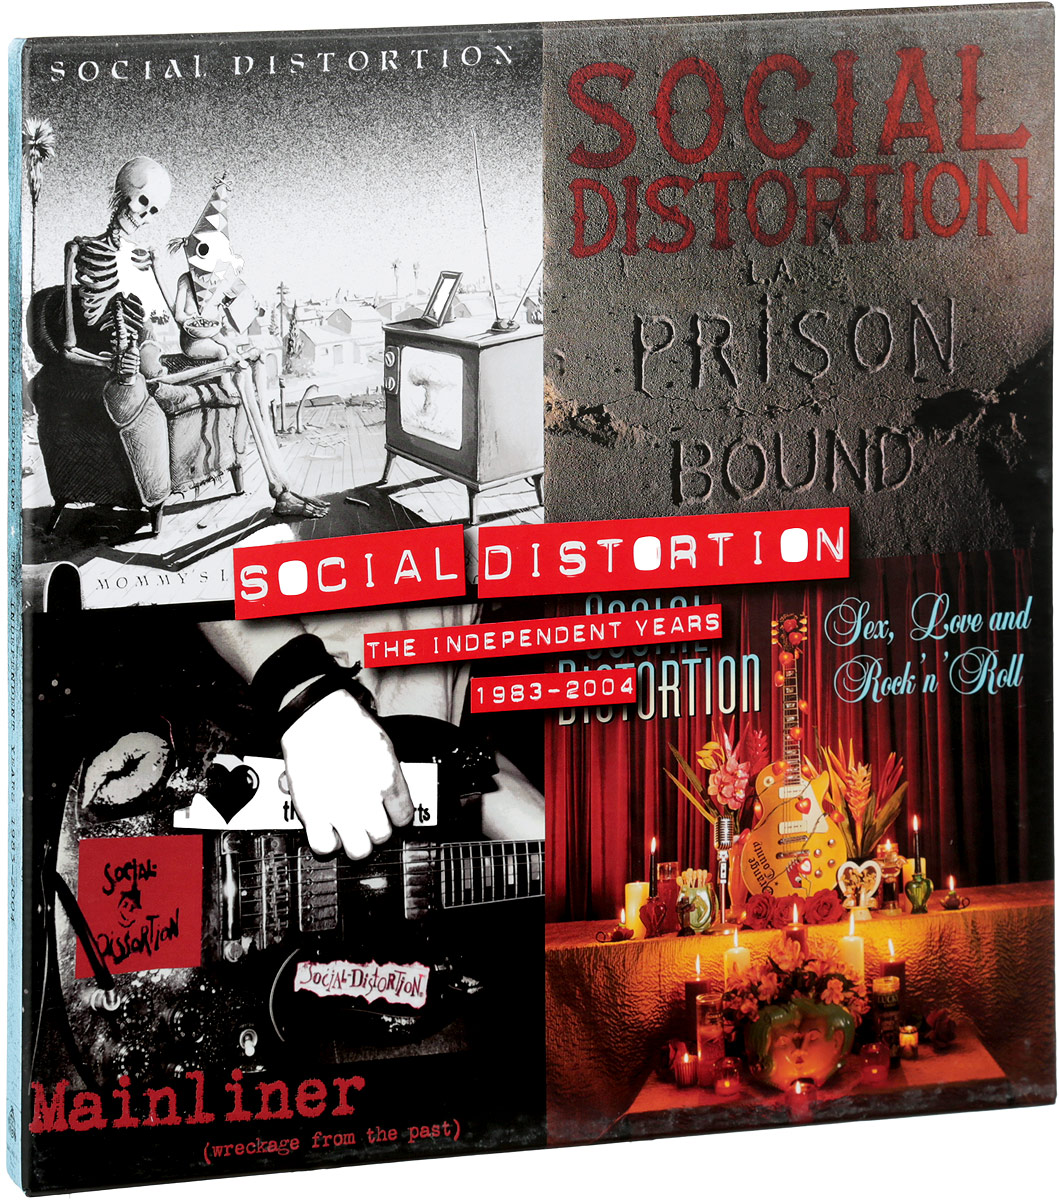 Social Distortion Social Distortion. The Independent Years 1983-2004 (4 LP) mission survival 4 tracks of the tiger